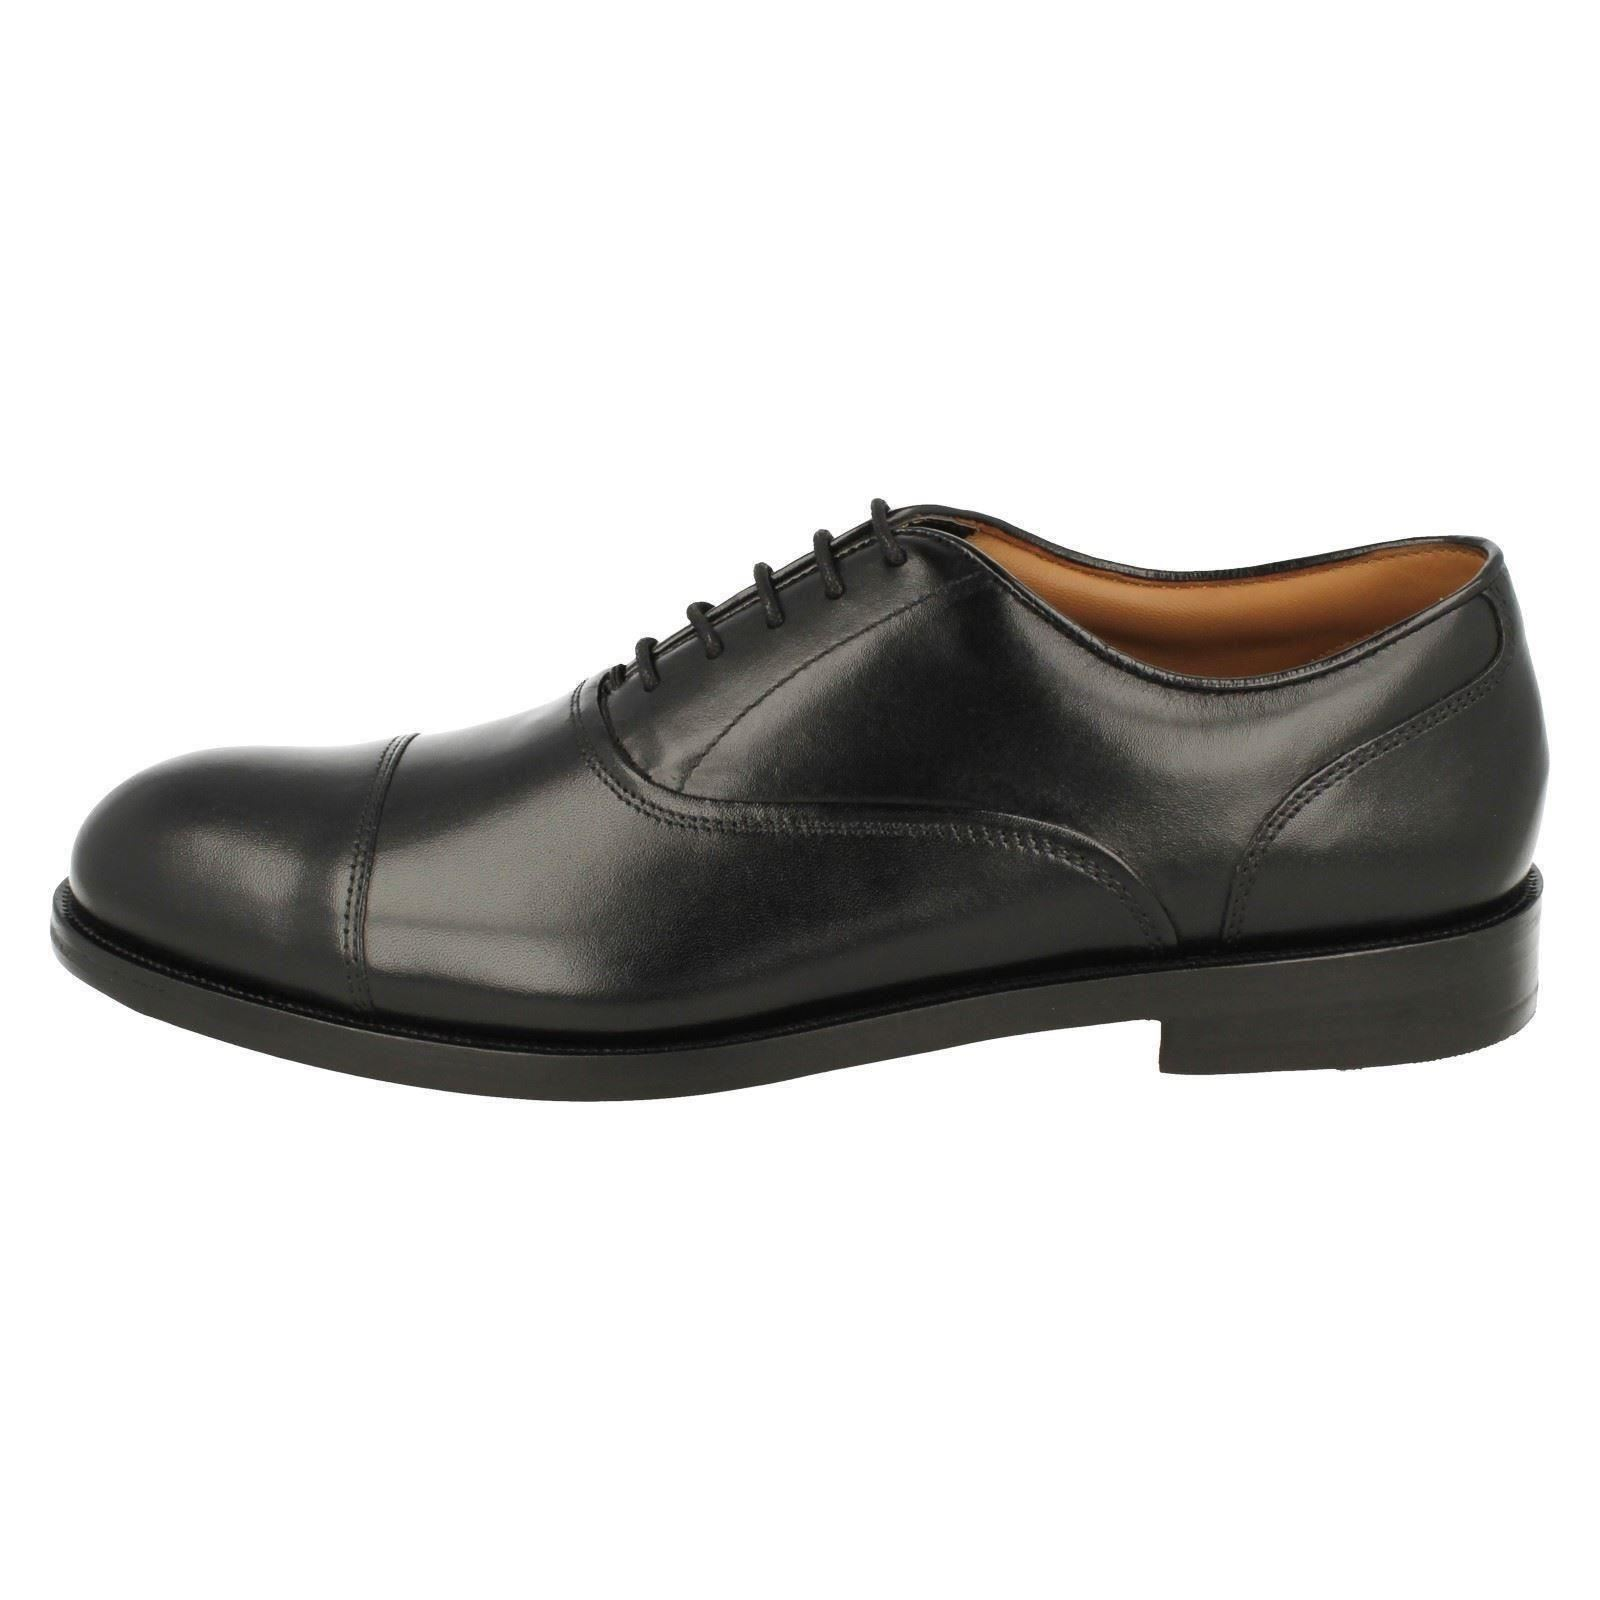 Men's Clarks Formal Lace Up Shoes The Style - Coling Boss